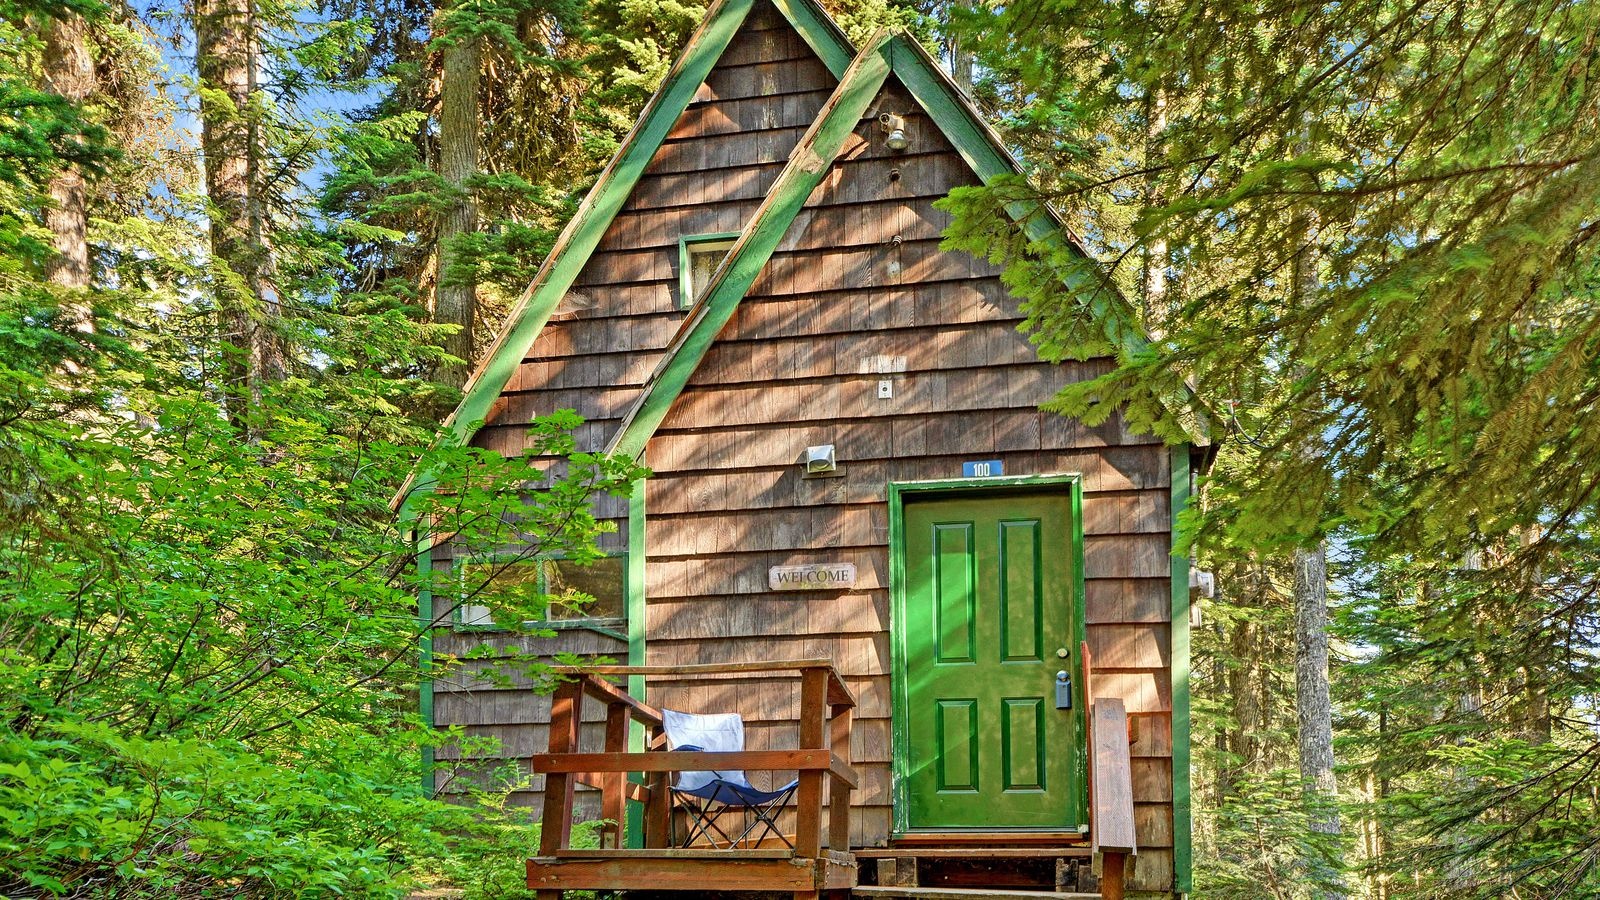 Retreat to a tiny house in snoqualmie pass for under 100k for Houses for under 100k near me